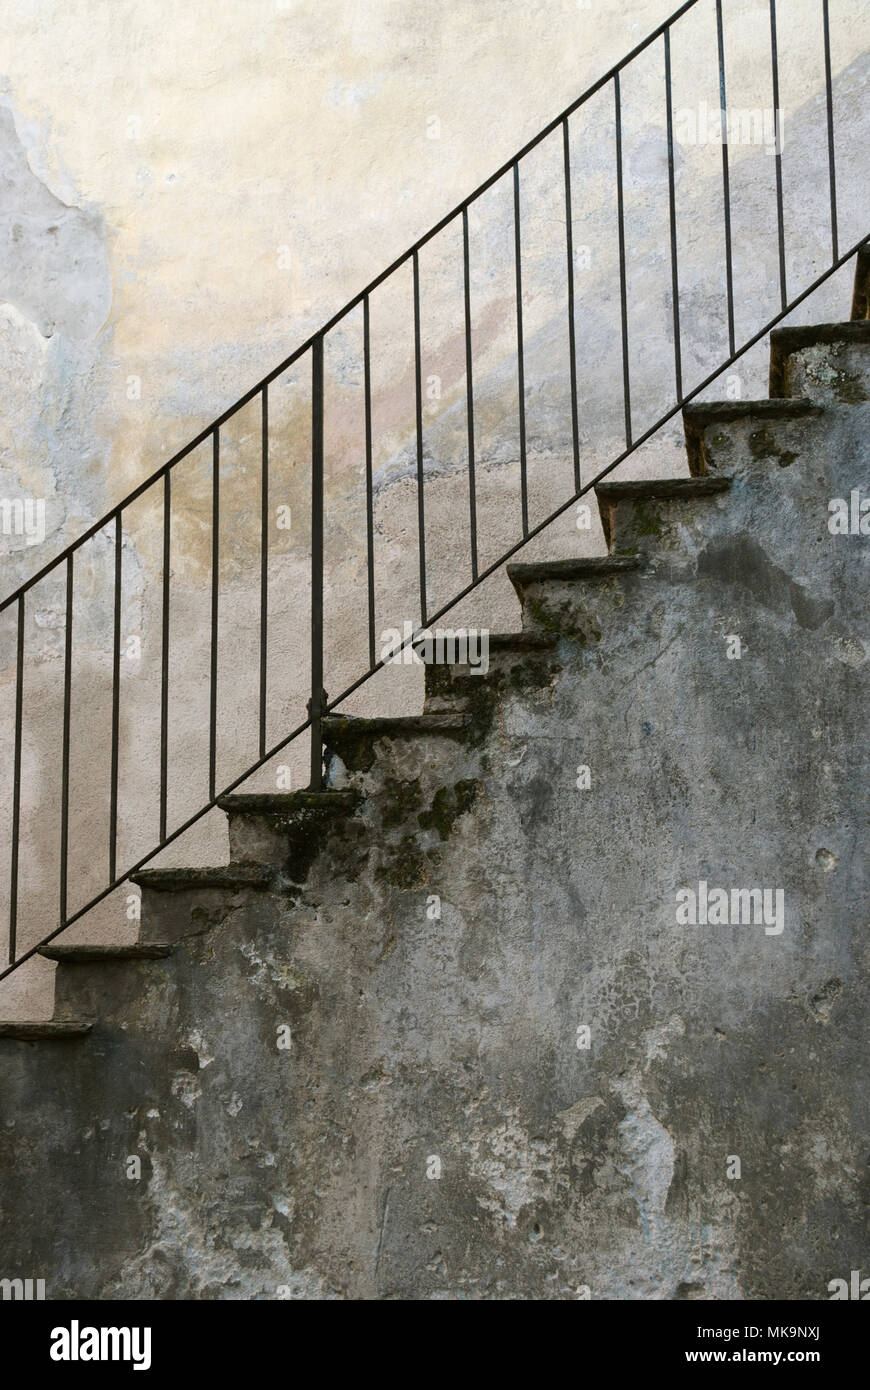 Old Exterior Stone Staircase With Metal Handrail Stock Photo Alamy | Metal Handrails For Stairs Exterior | Outdoor Stair | Simplified Building | Porch | Deck Railing | Handrail Ideas